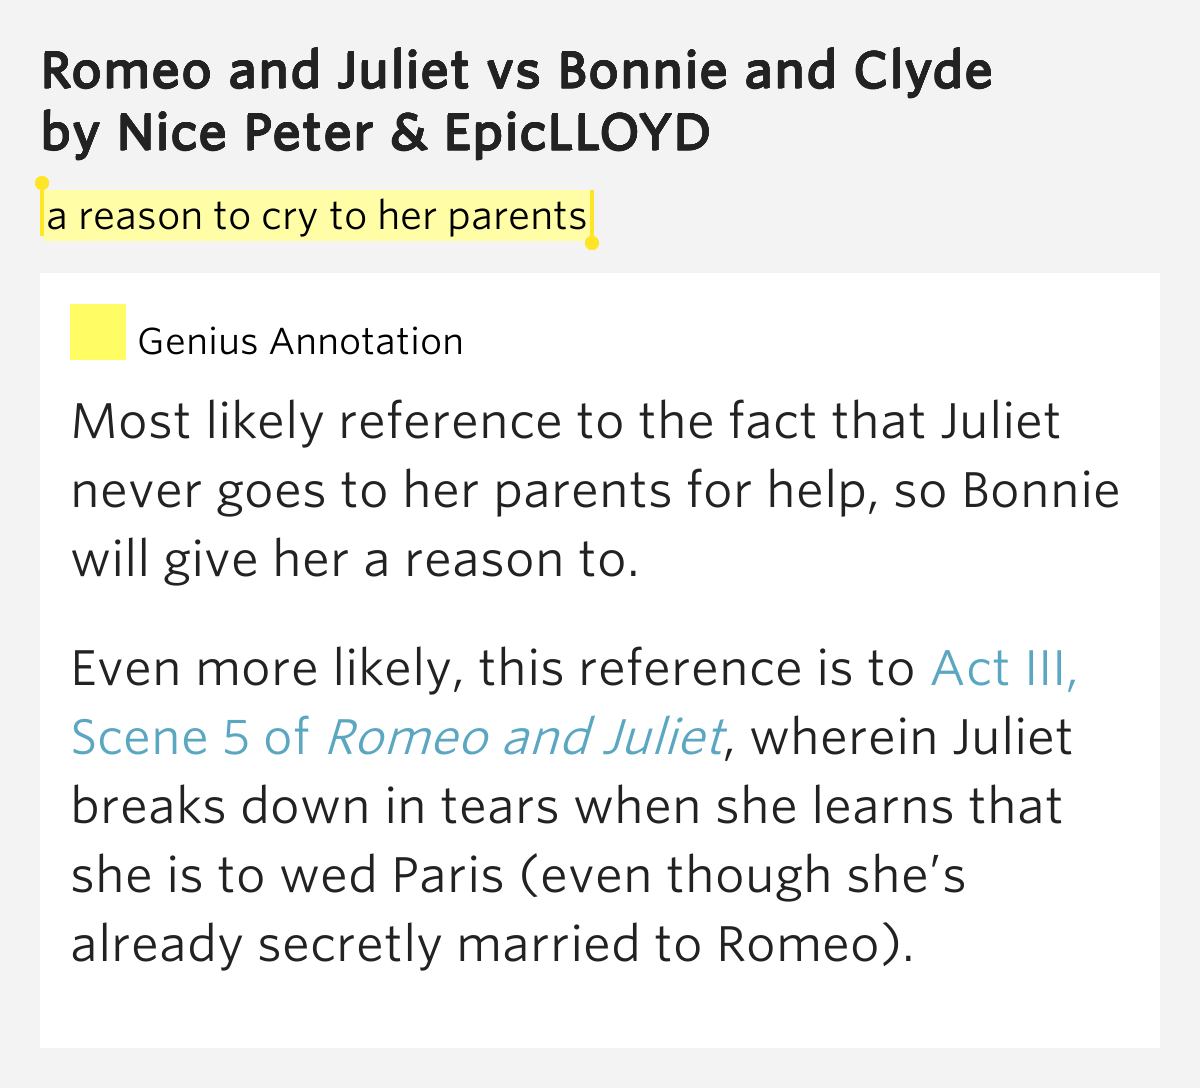 romeo and juliet passion verse reason Aye, it's verse, but if you're  romeo and juliet is a play about teen lust,  alternate ending was formed when three friends realized they all shared a passion.